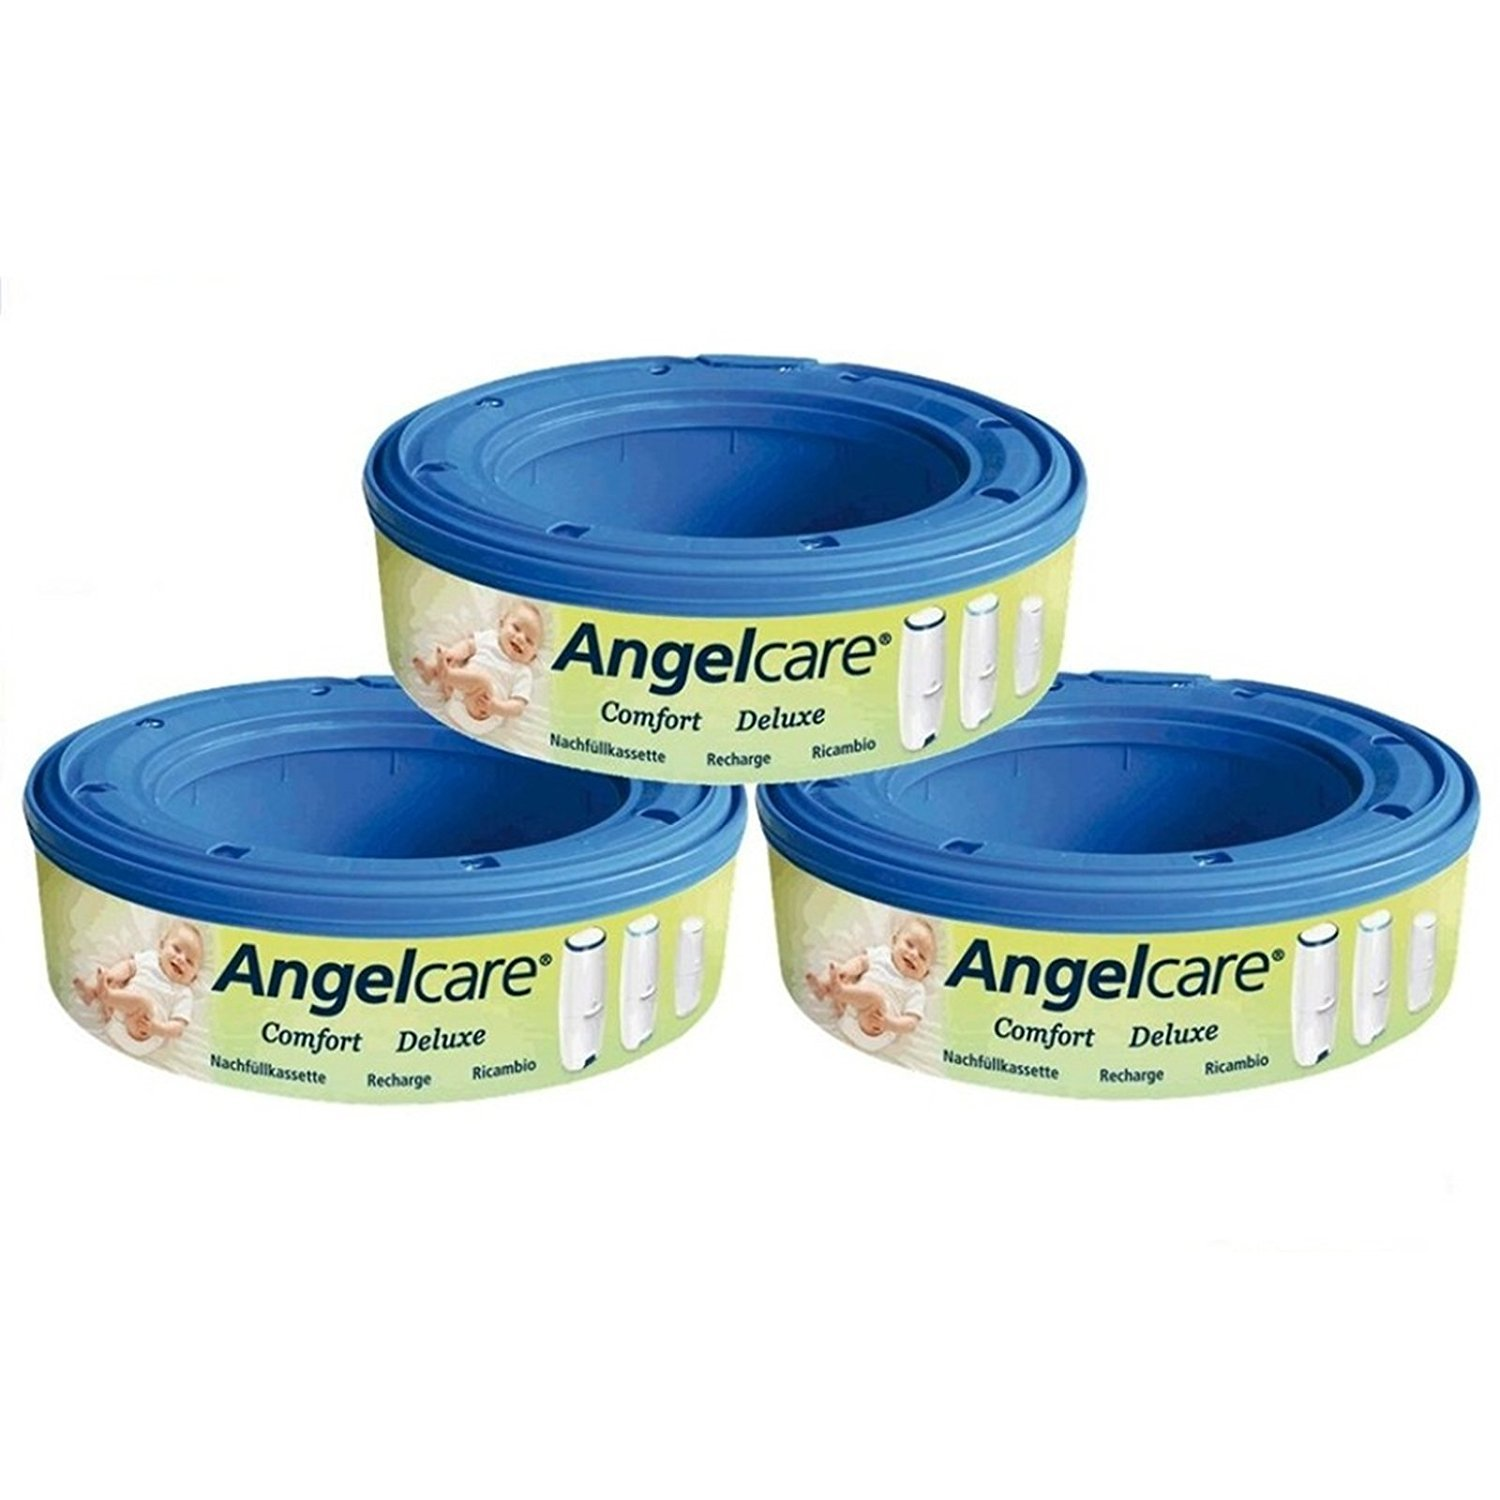 Angelcare 180400 3 with Refill Cartridges – Blue The Caged Fox 180400-3n